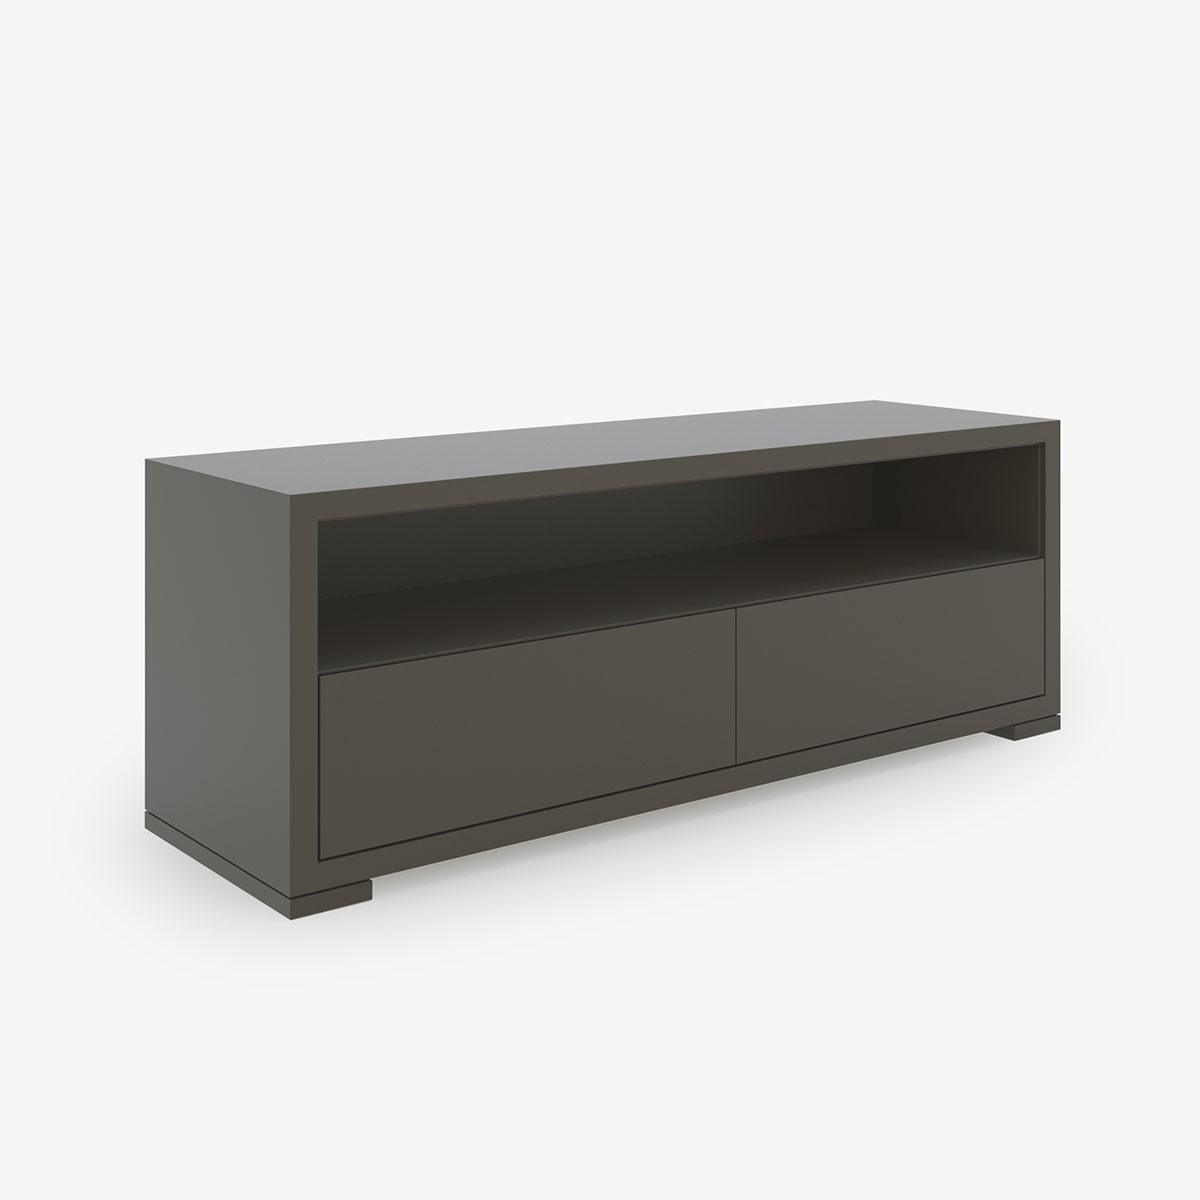 Style Store Media Unit, Lacquer Finish - Taupe Grey